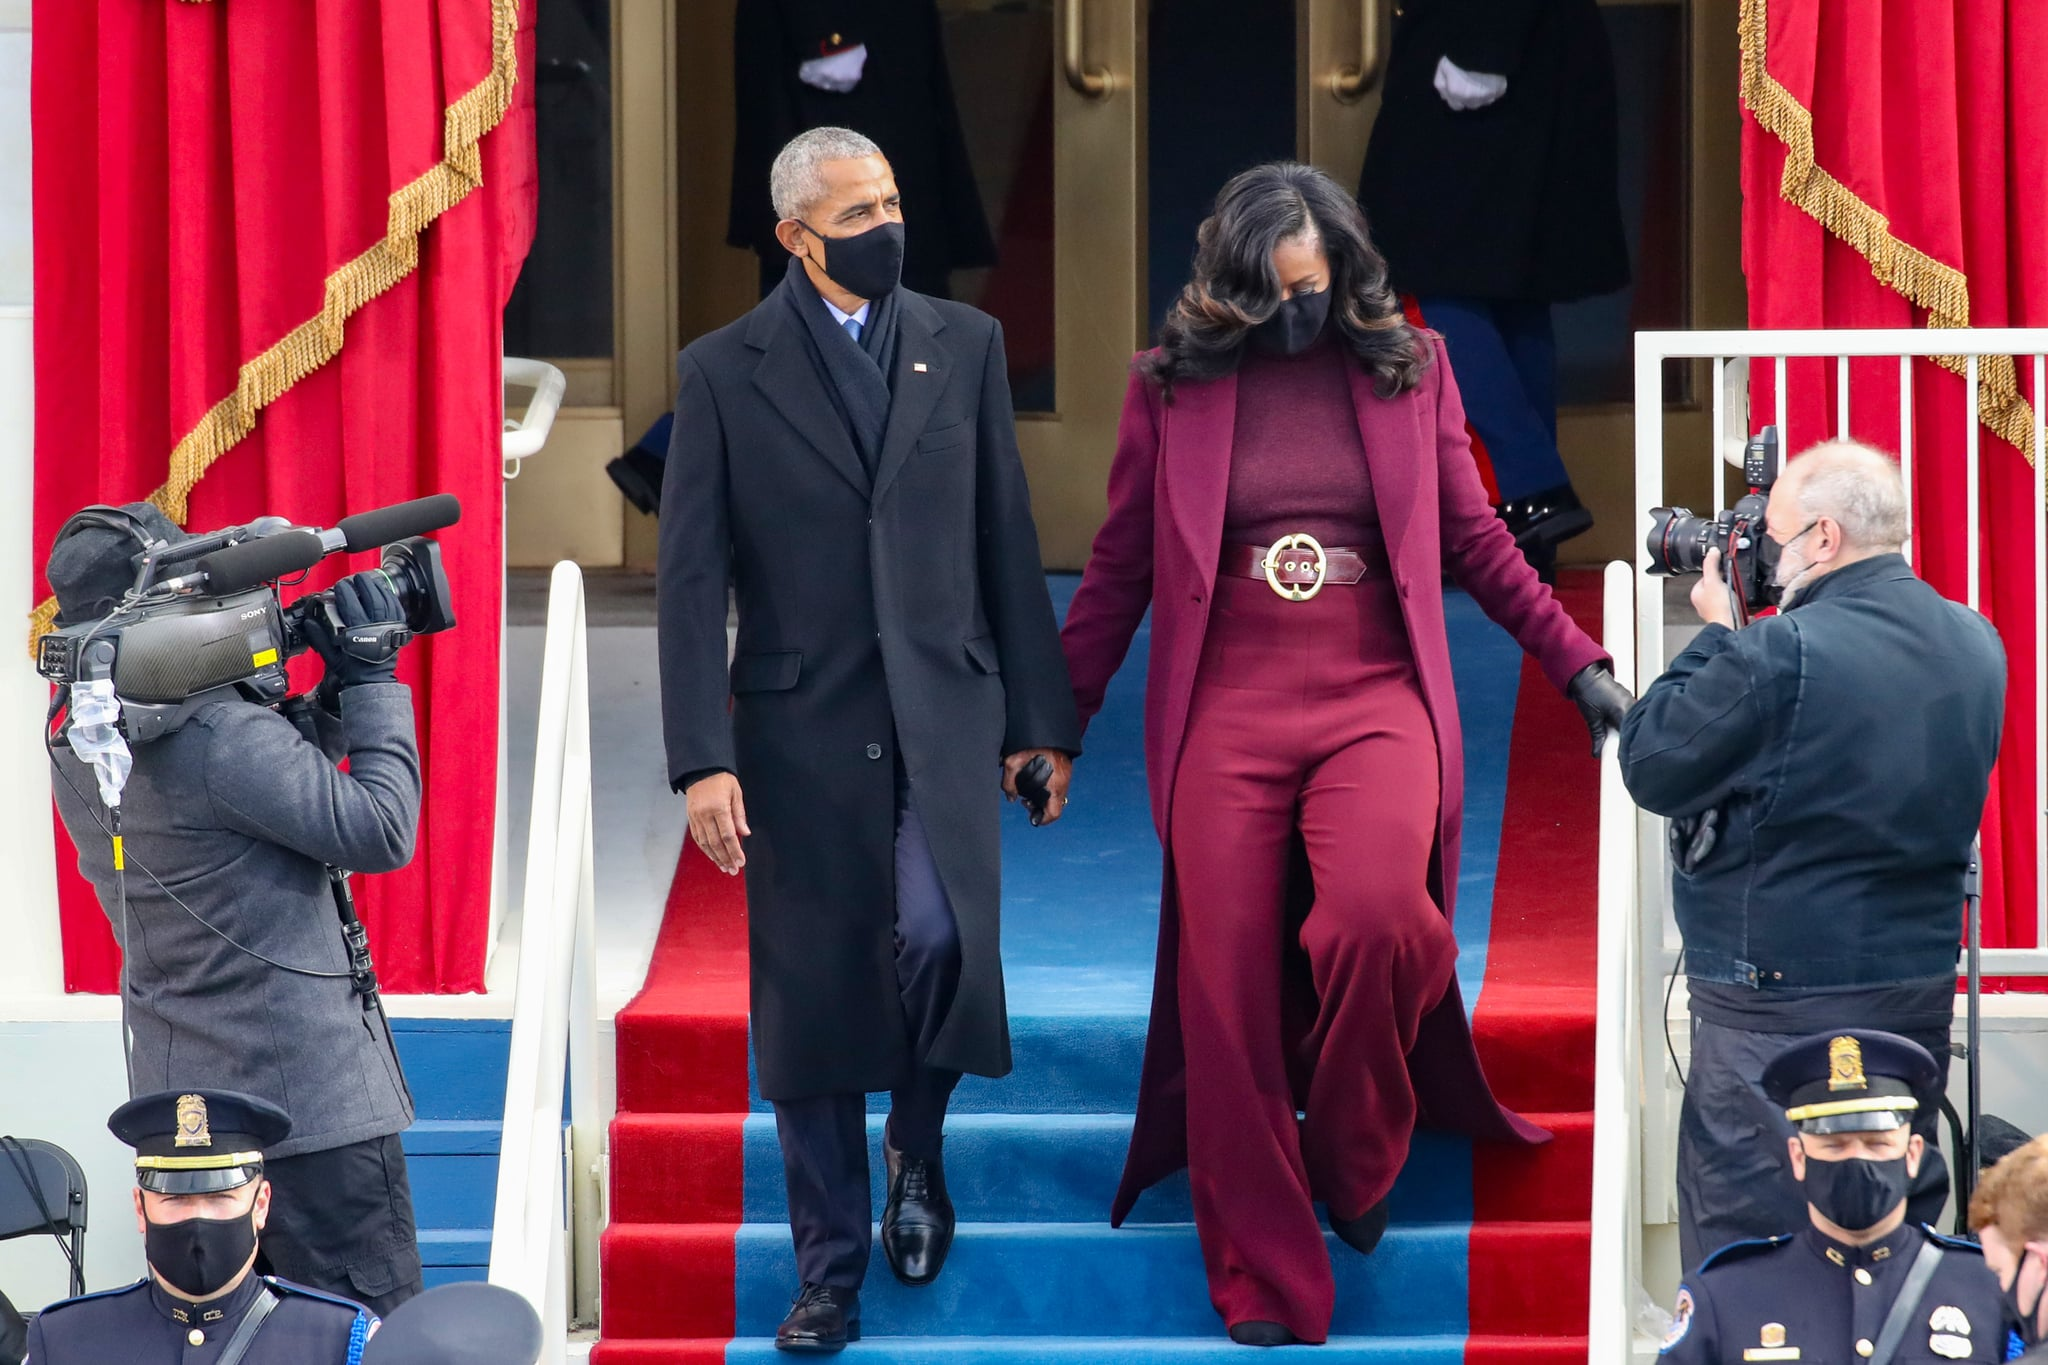 Former First Lady Michelle Obama Steals Inauguration Shine With Chic Elegant Fashion